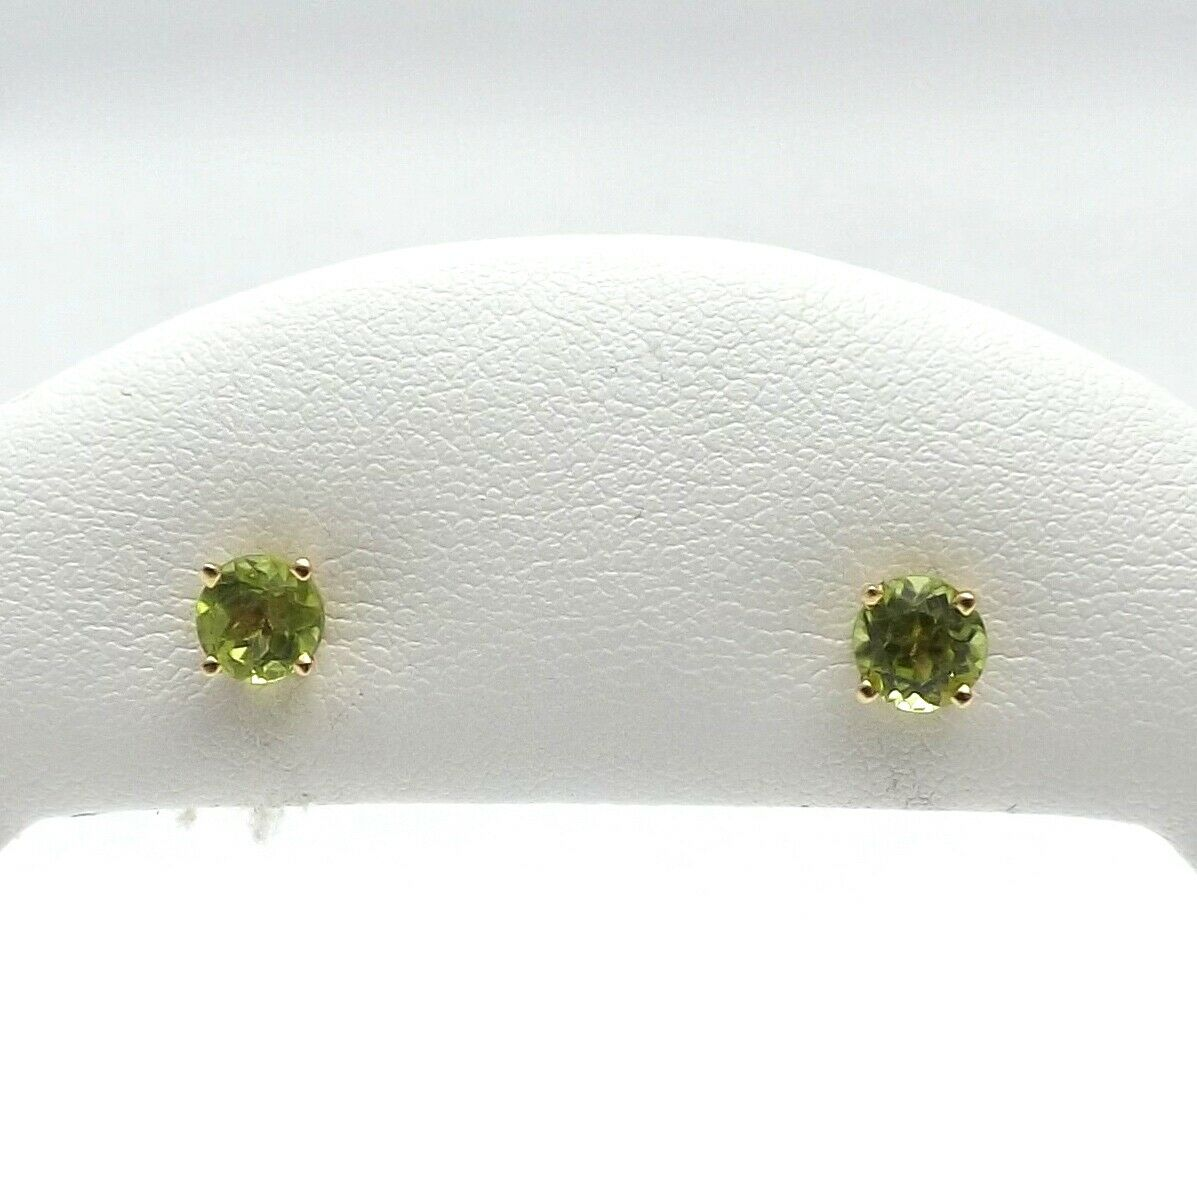 bd09536a2 New 14K gold Peridot August Birthstone Stud Earrings 1ctw Post ...